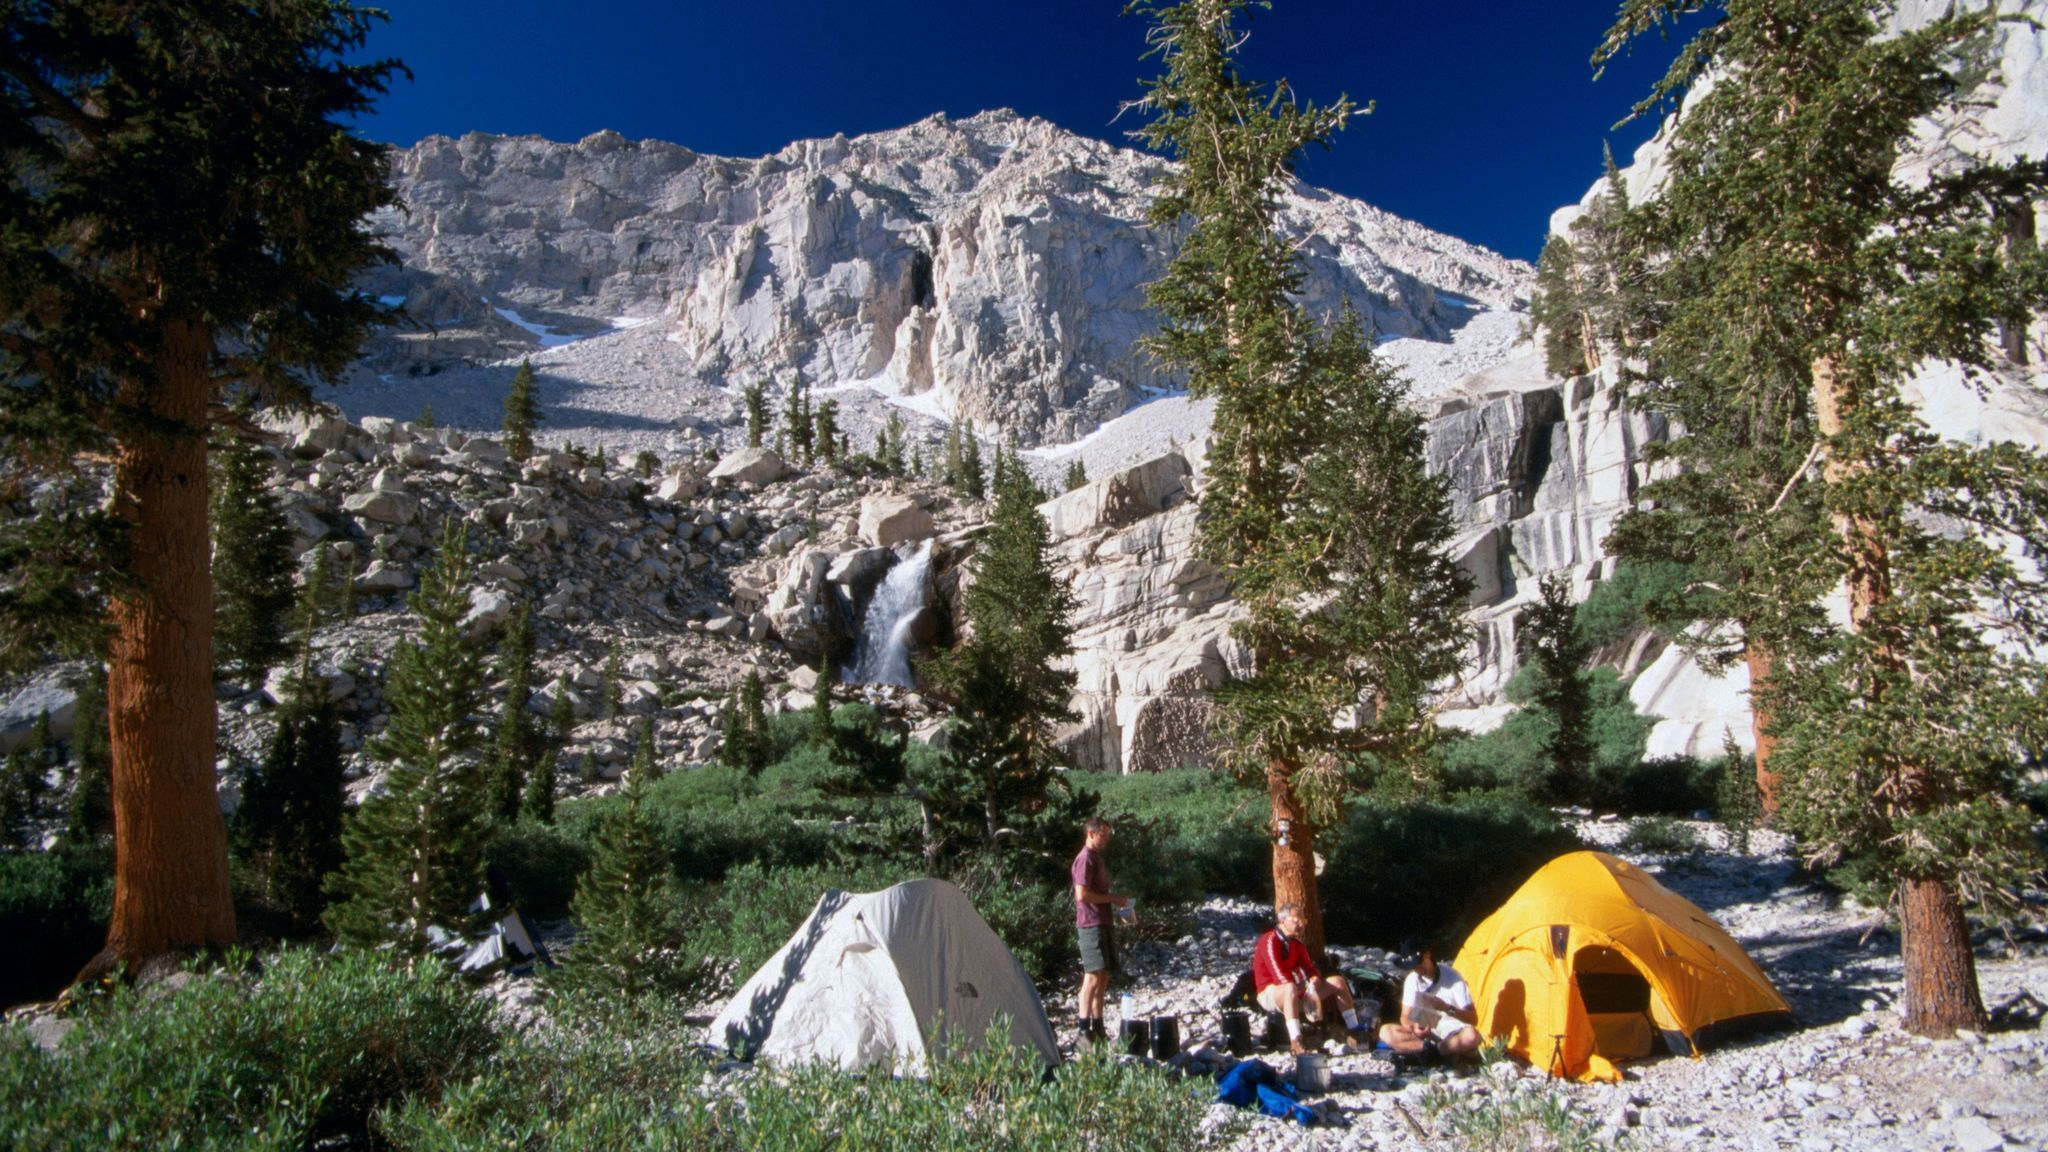 Campers on the Whitney Portal Trail, in the Sierra Nevada mountains, Inyo  National Forest